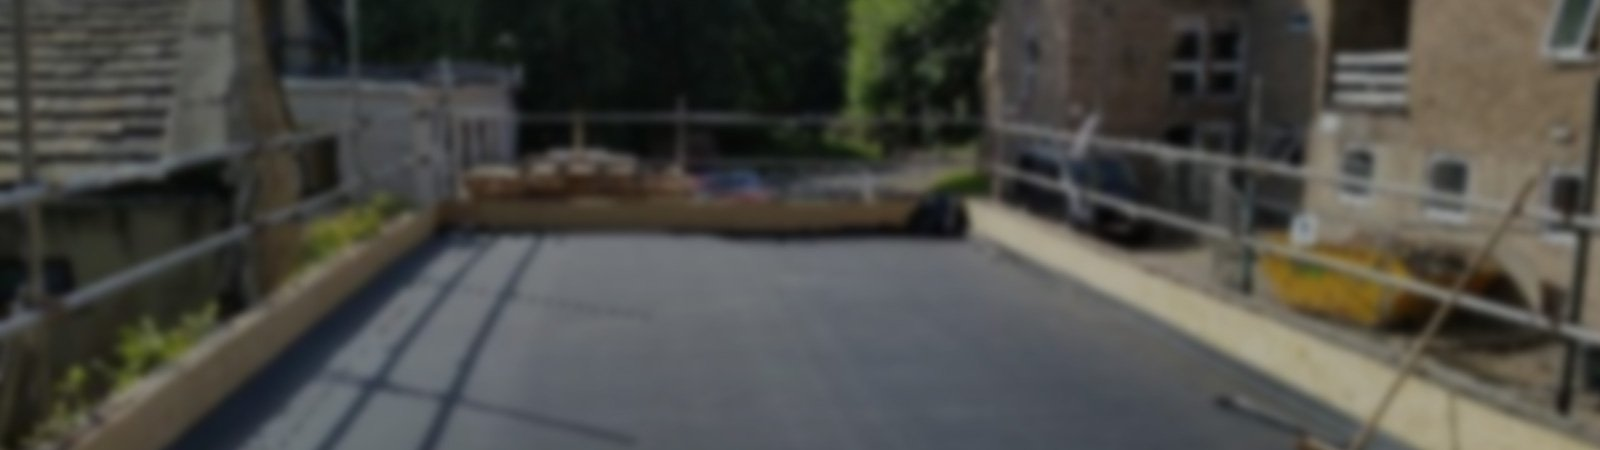 Epdm Rubber Flat Roofing Suppliers Amp Installers For